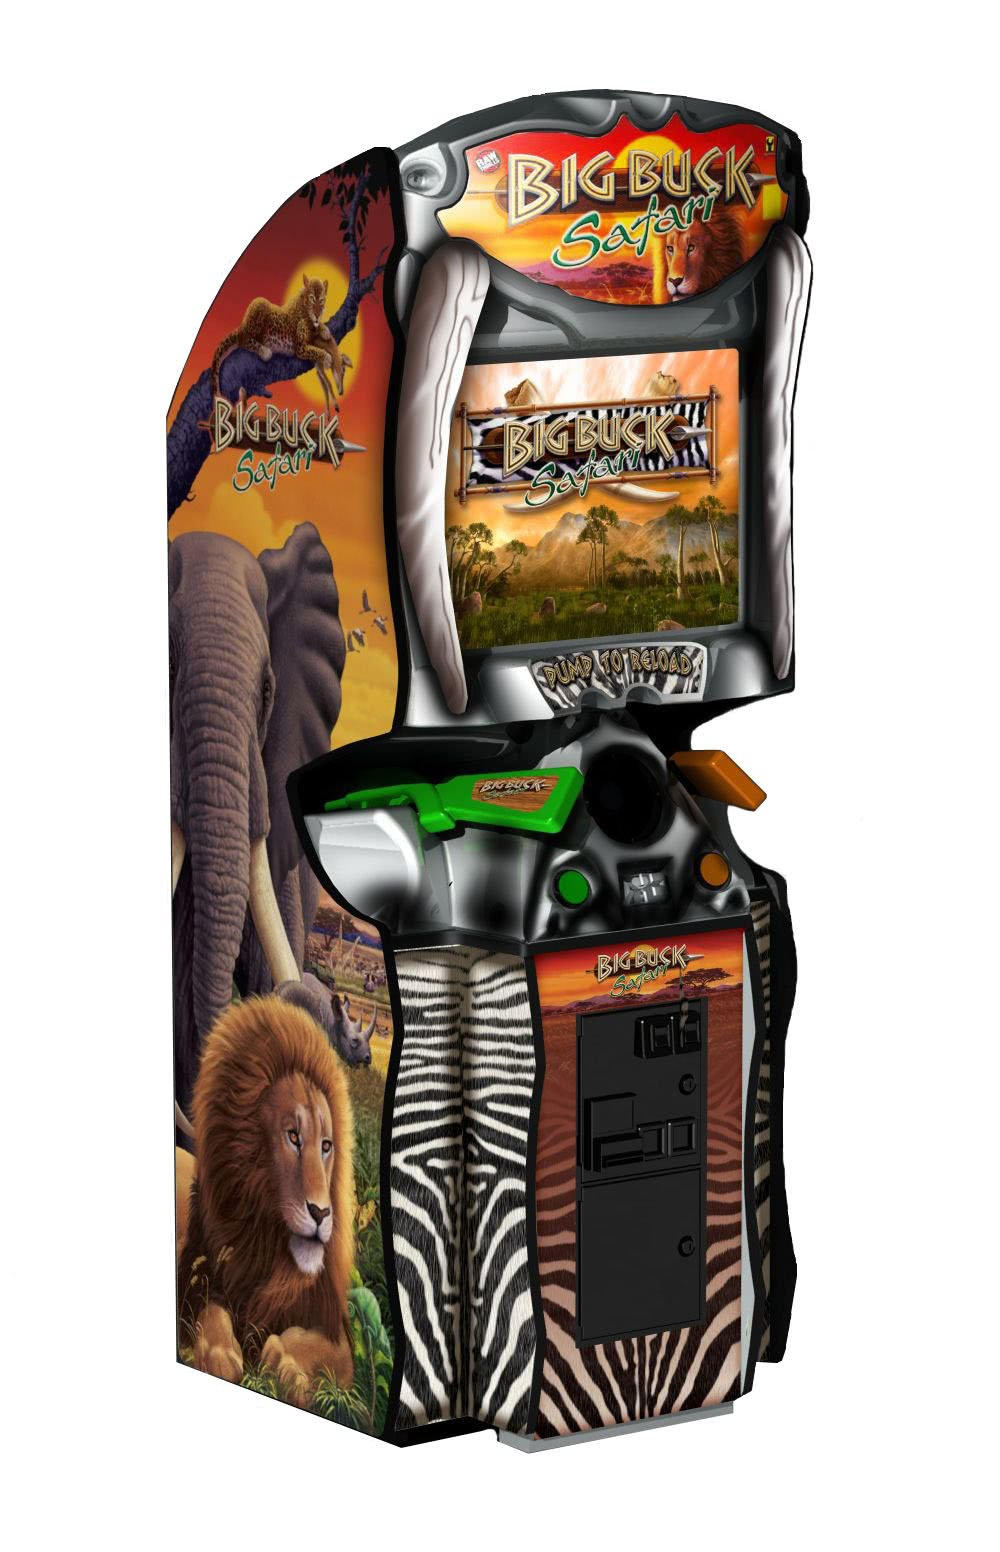 Raw Thrills Big Buck Hunter Safari Arcade Machine